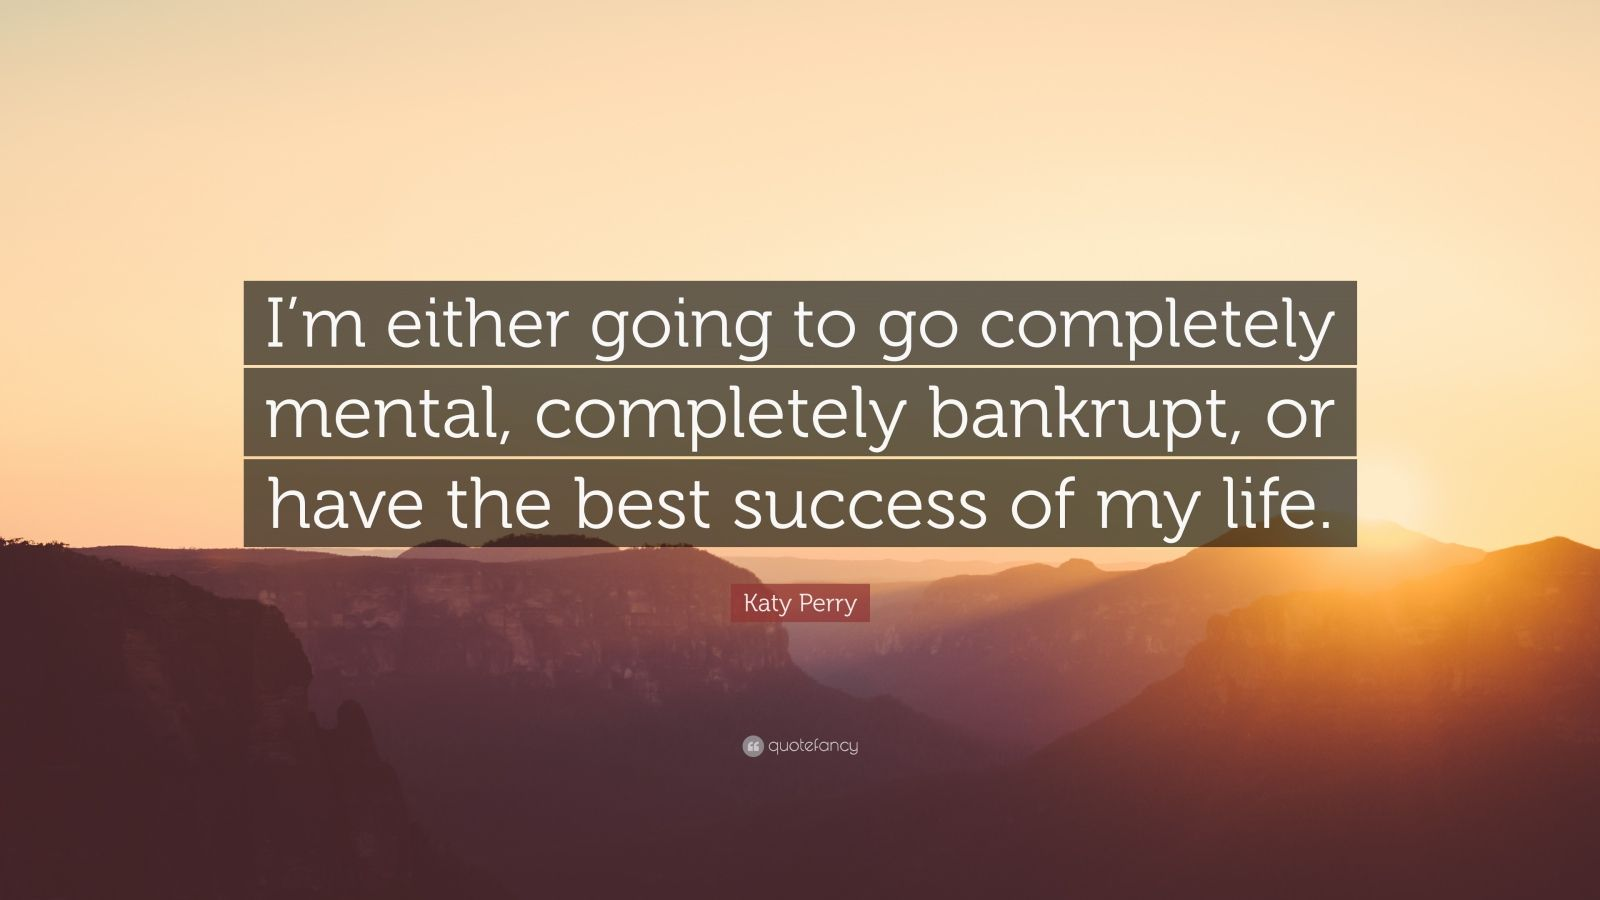 """Katy Perry Quote: """"I'm either going to go completely mental, completely bankrupt, or have the best success of my life."""""""